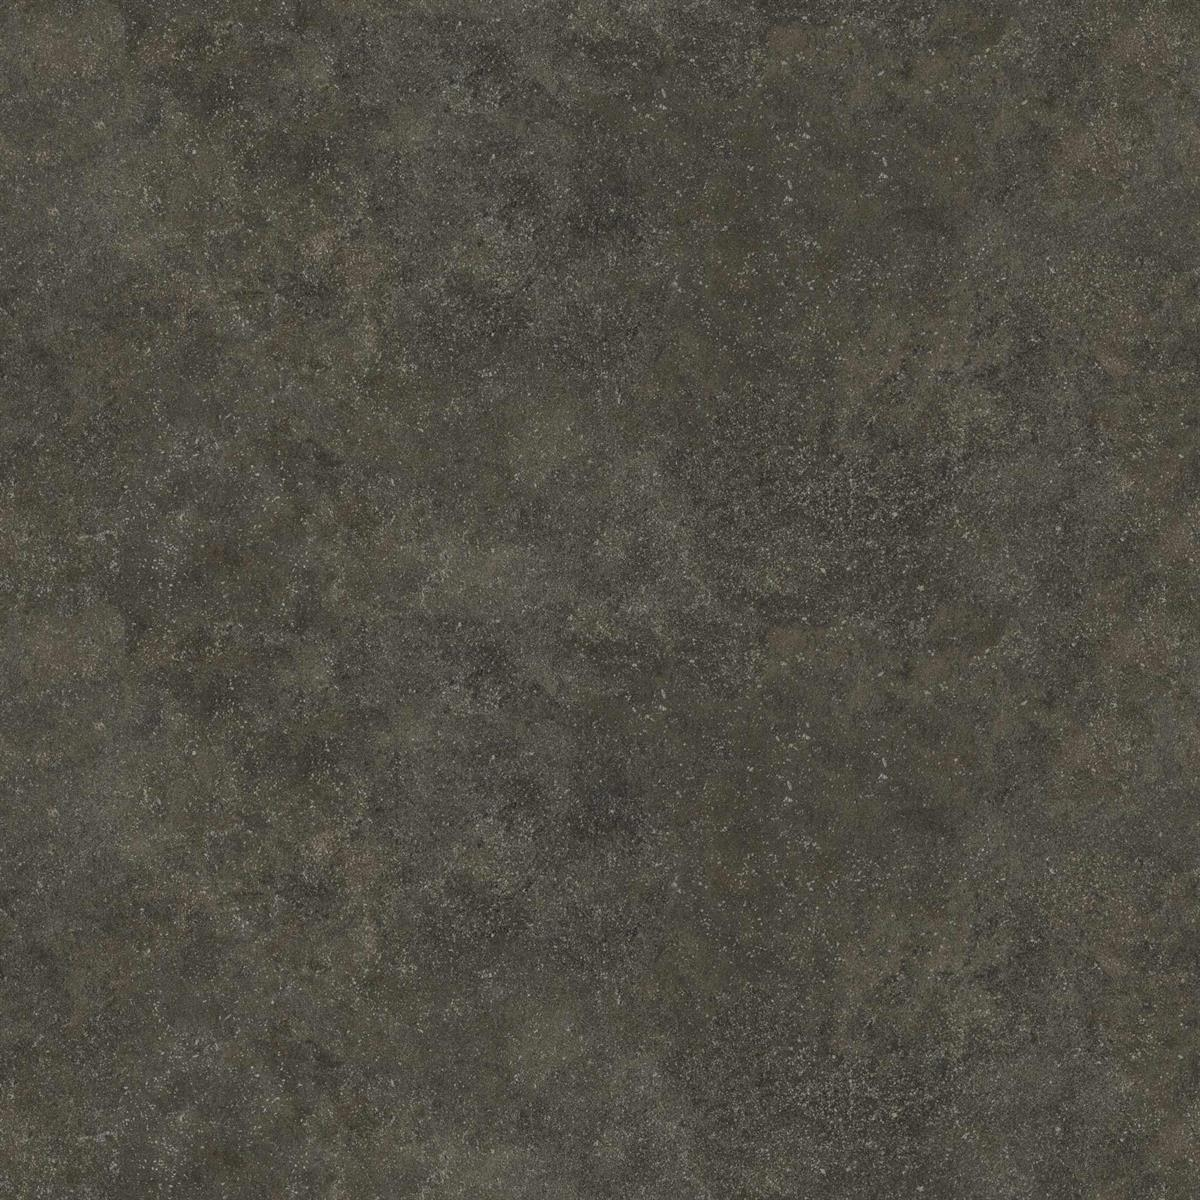 Egger Contemporary Archetipo Terra kitchen worktop sample.